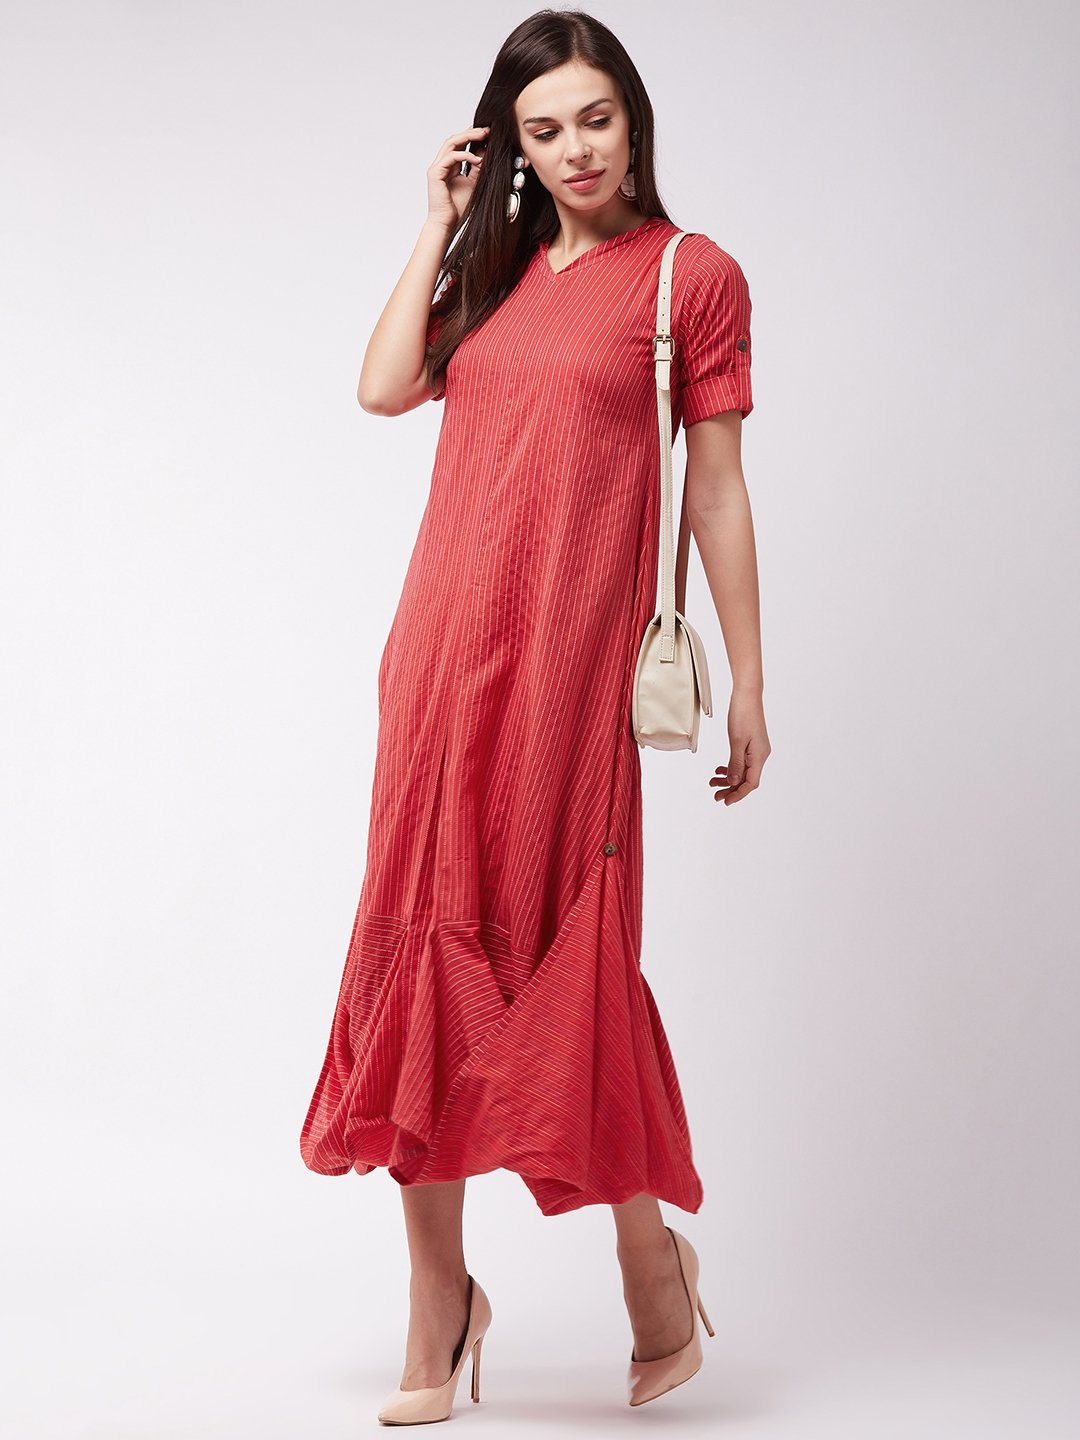 Red Kantha Cowl Dress